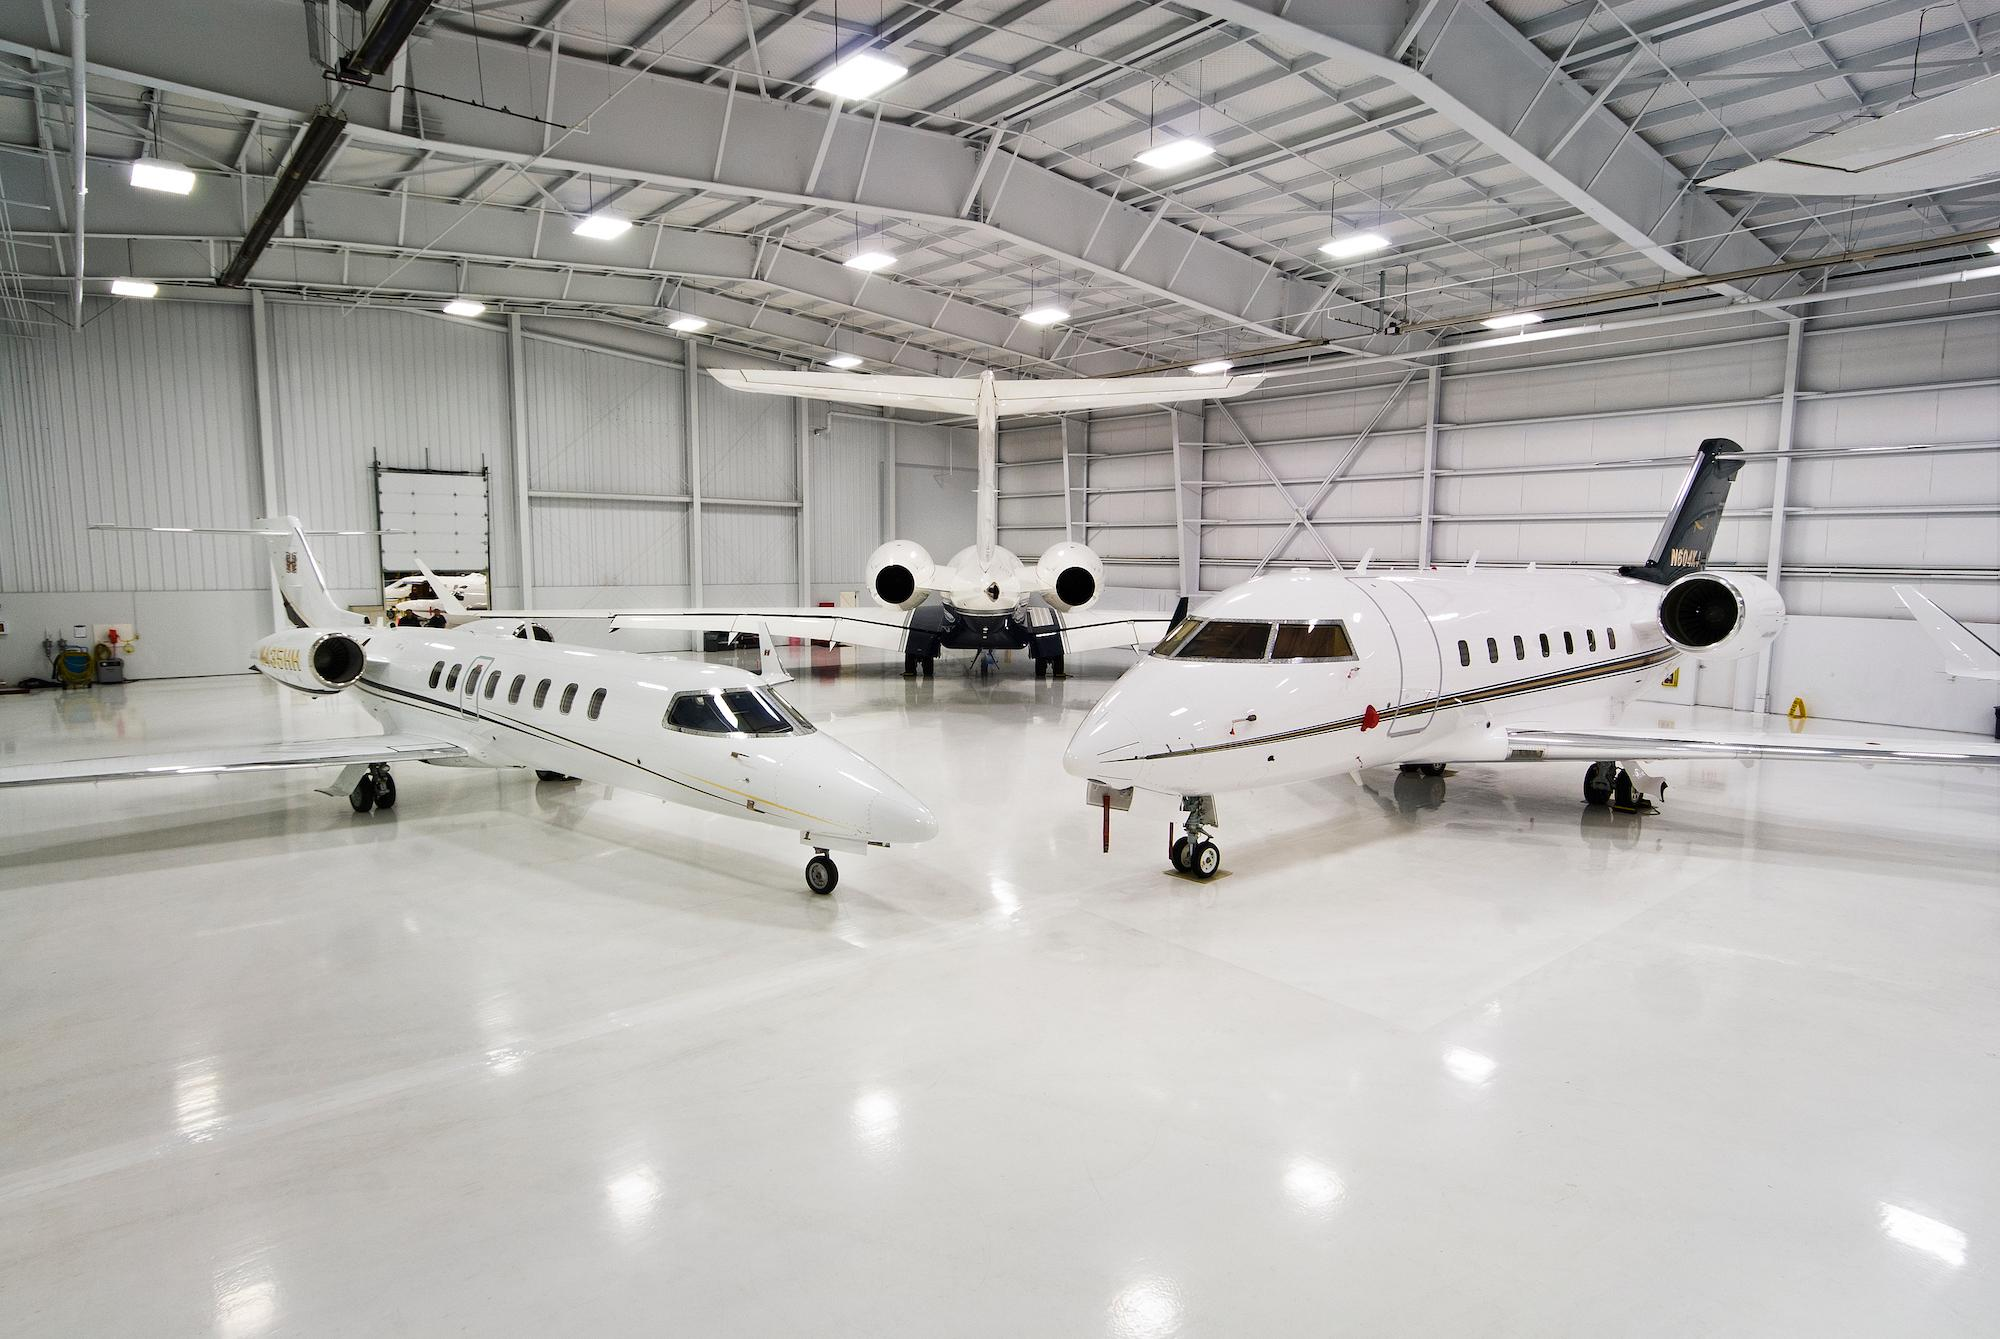 A charter flight can be relatively affordable for out-of-town group trips and special occasions when you want to maximize convenience, enjoy exemplary service or arrive in undeniable style.